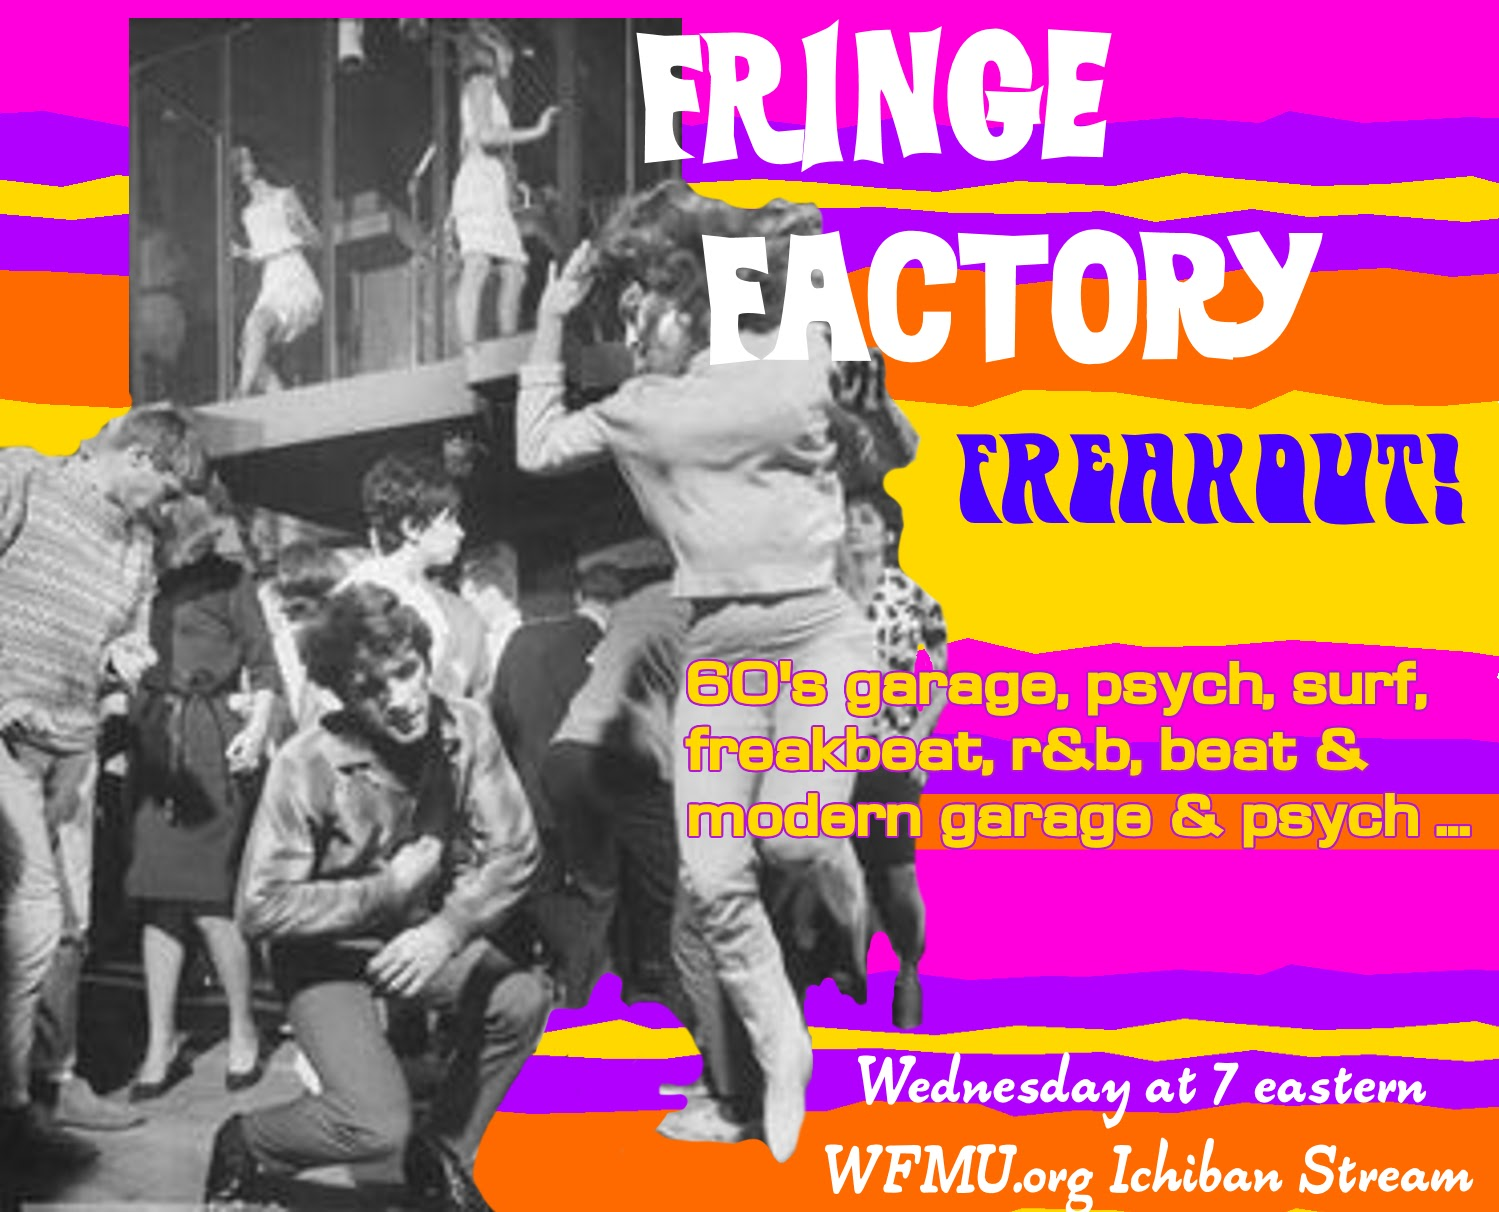 FRINGE FACTORY FREAK OUT!